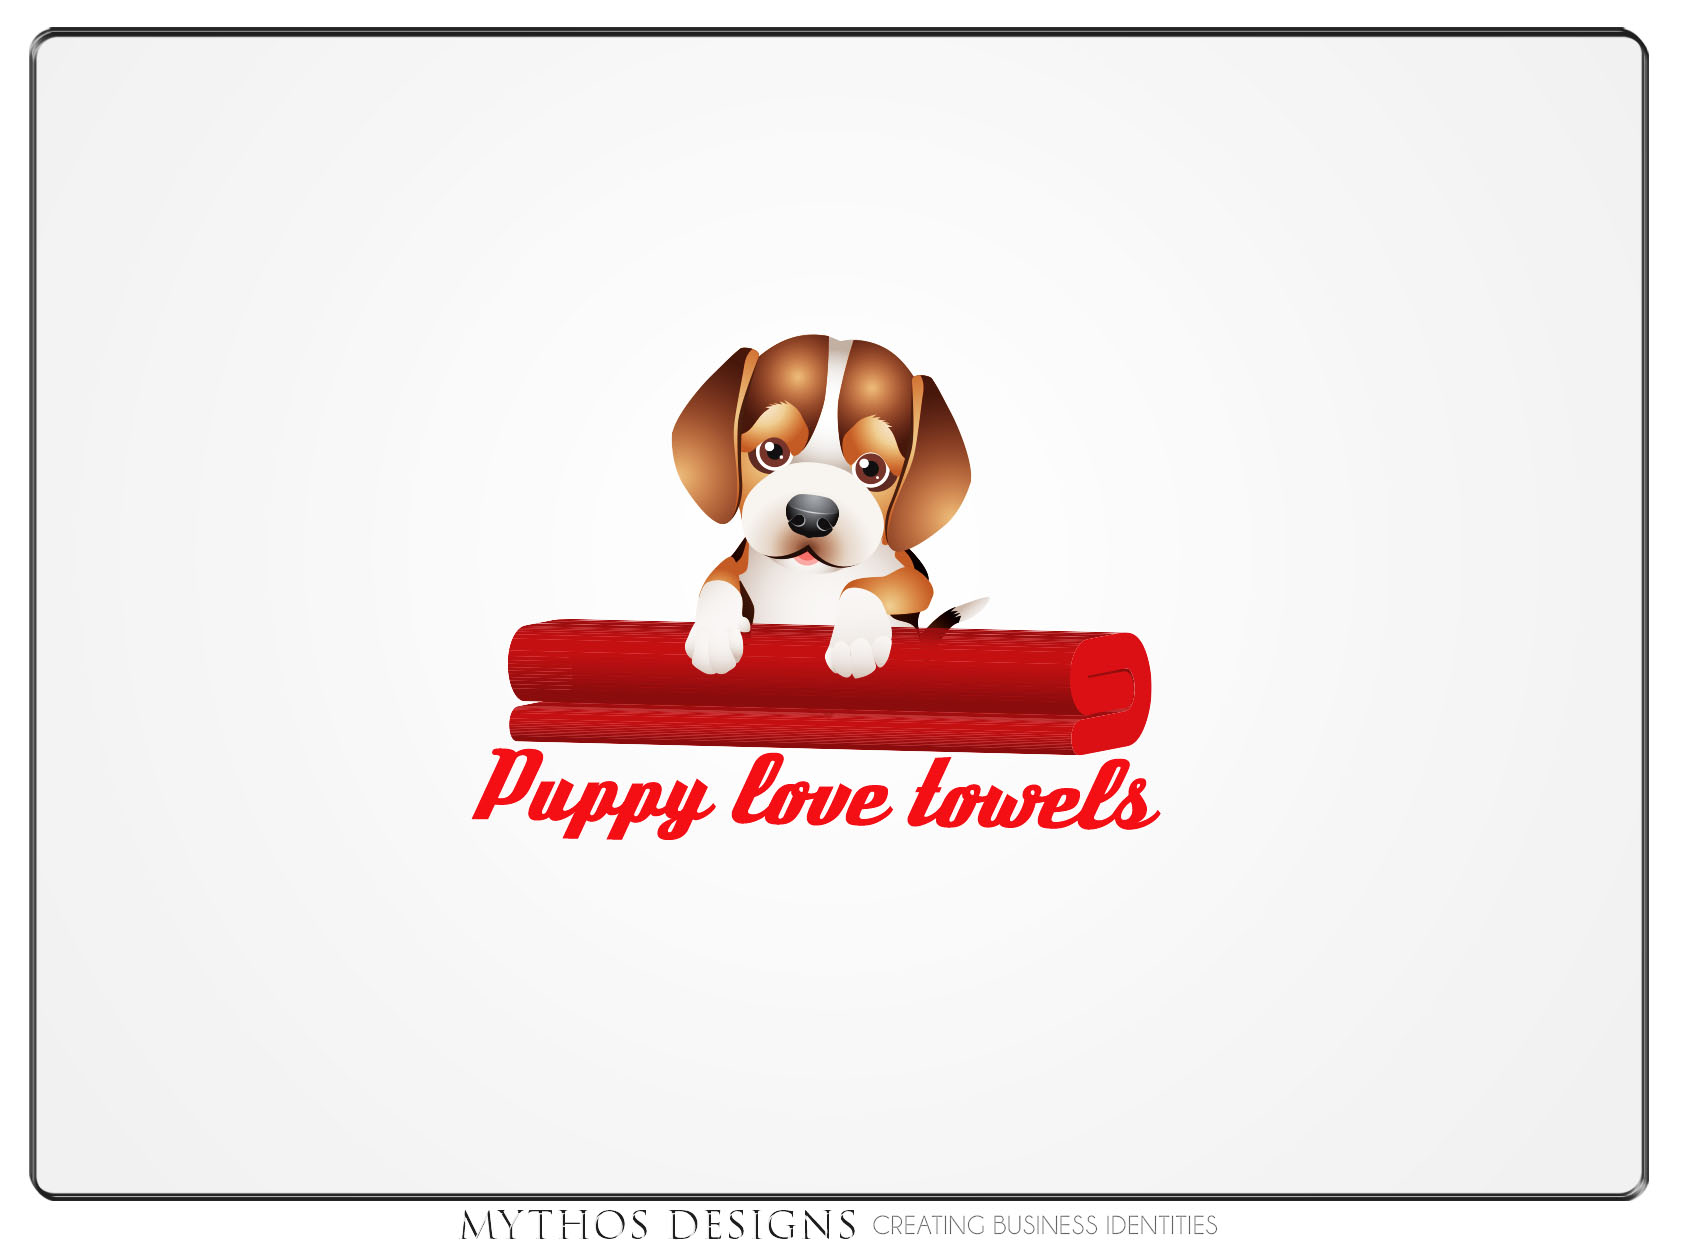 Logo Design by Mythos Designs - Entry No. 45 in the Logo Design Contest Artistic Logo Design for Puppy Love Towels.